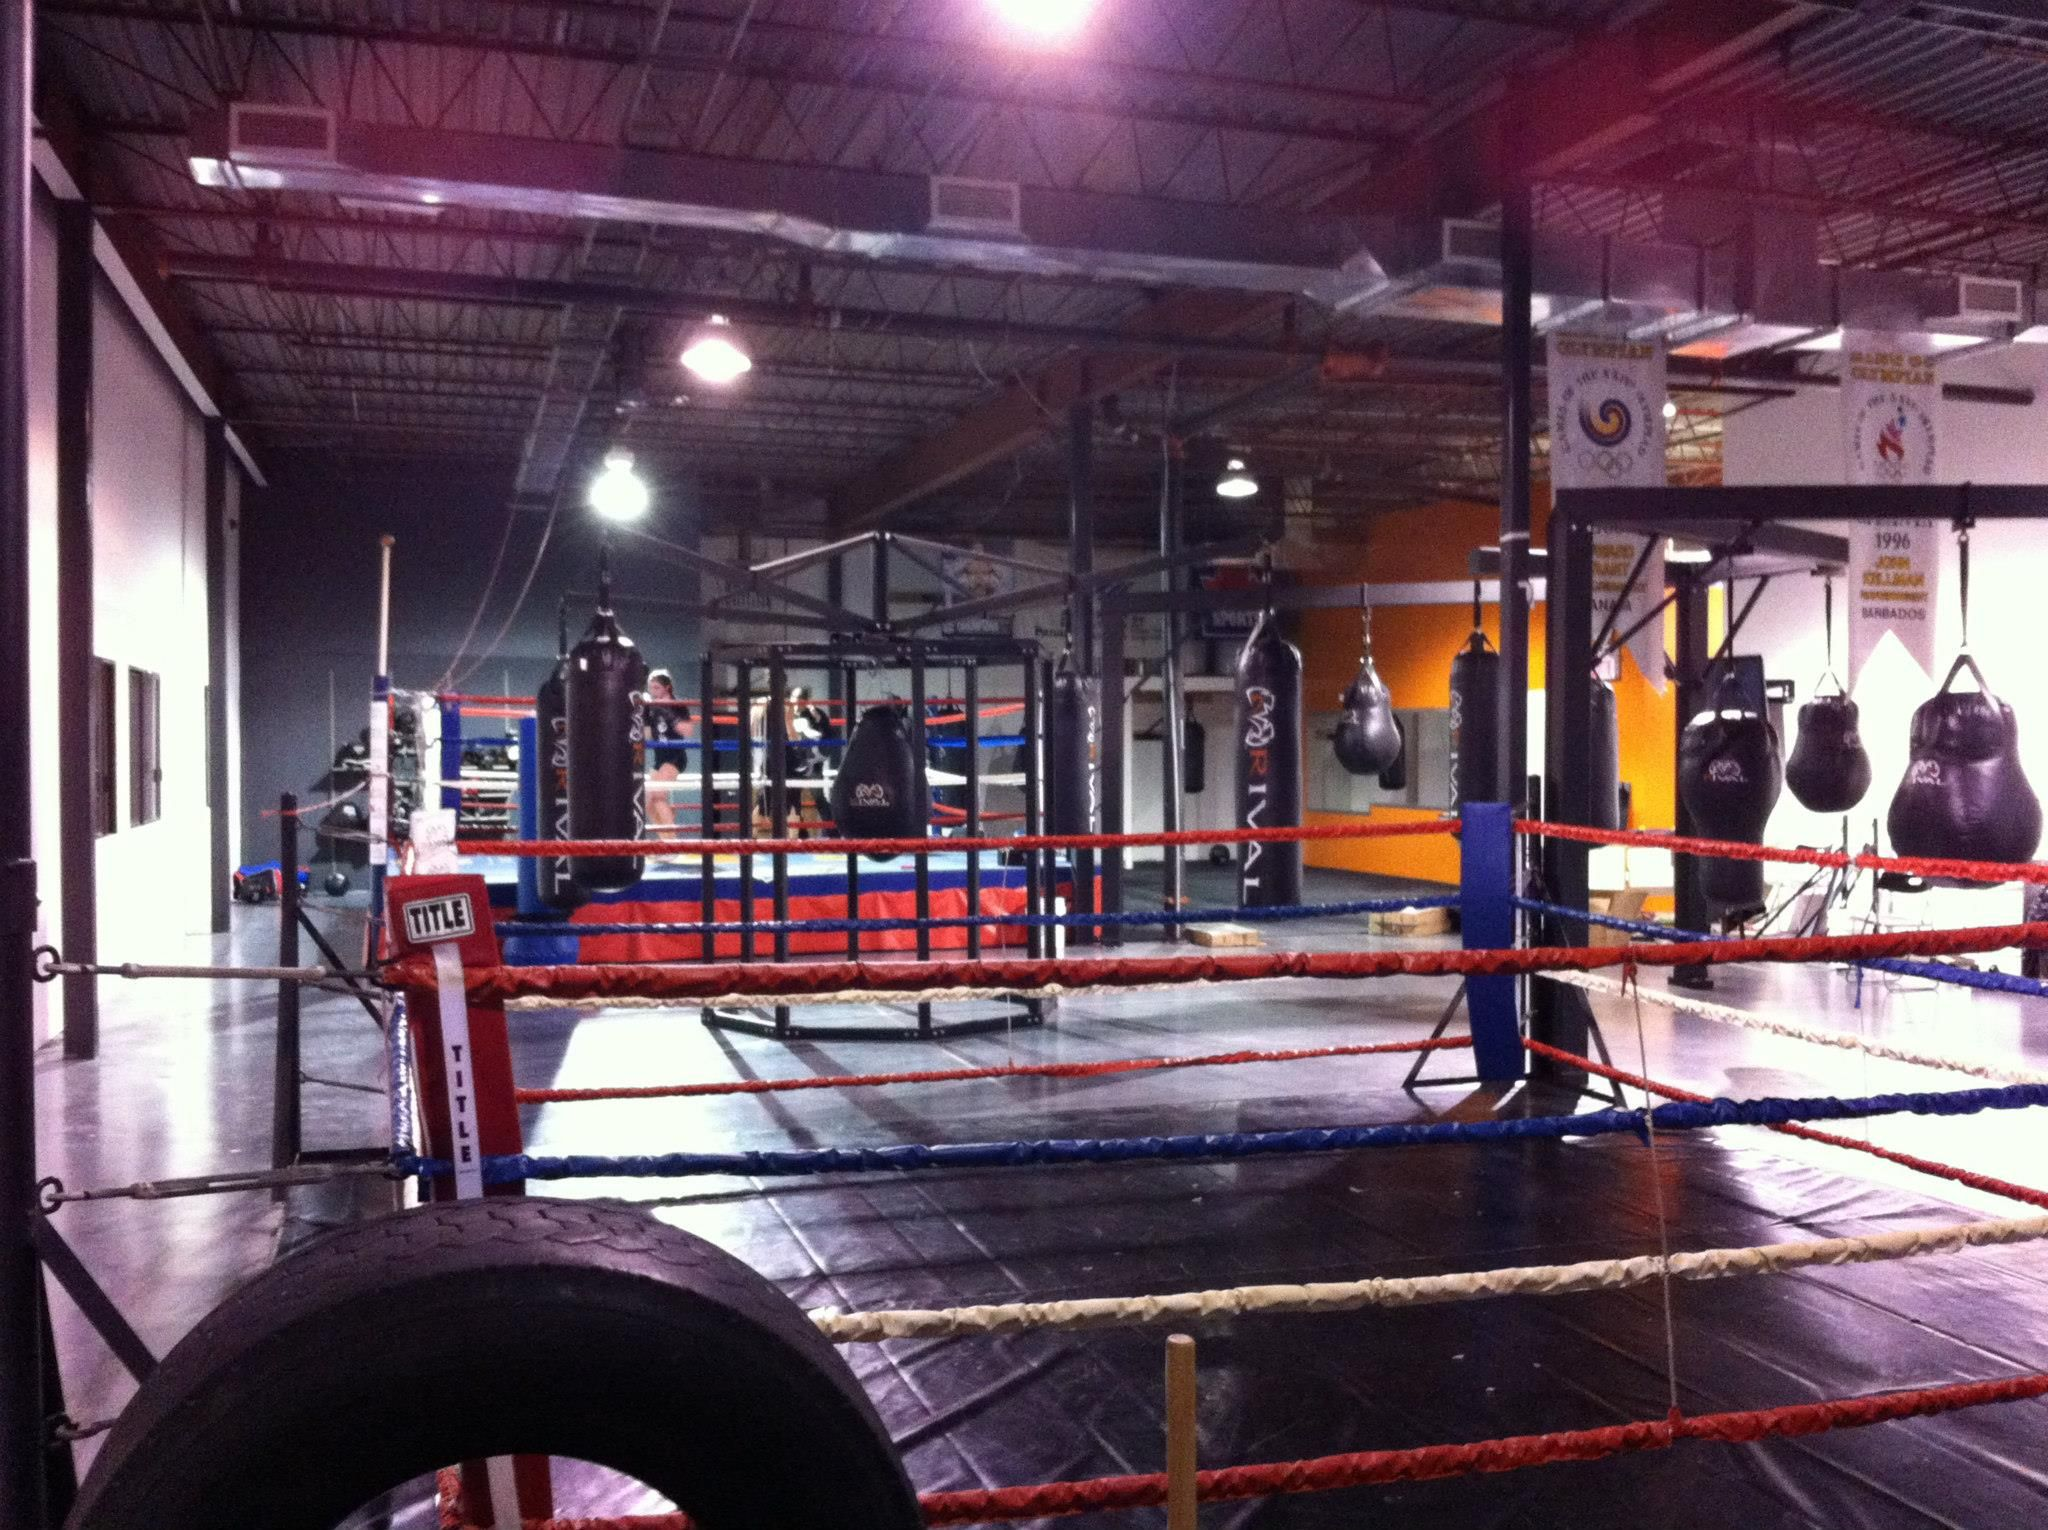 Pin by House of Boxing Training Center on boxing gyms | Boxing gym, Gym, Gym interior